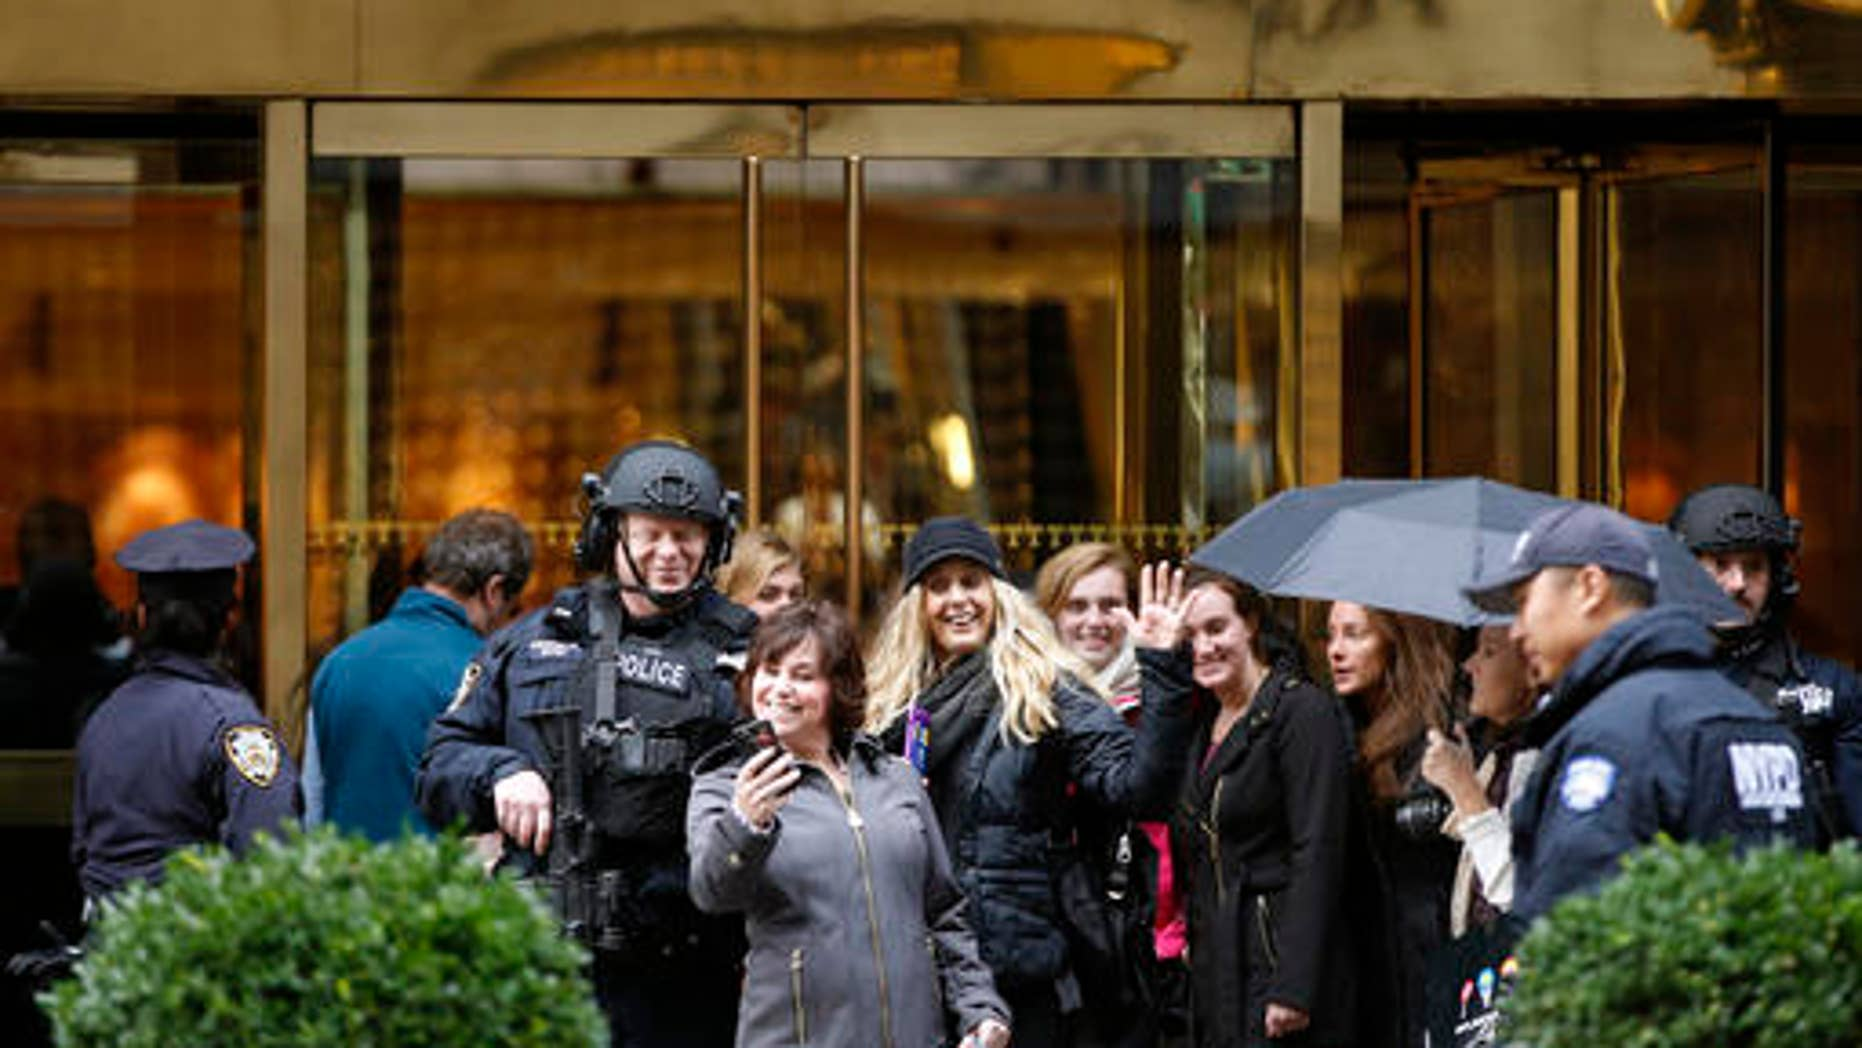 Passersby stop for a selfie with a heavily-armed New York City police officer at the main, Fifth Avenue entrance to Trump Tower, Tuesday, Nov. 15, 2016, in New York. For nearly the entire week since he became president-elect, Donald Trump has been holed up in the tower, his gilded New York skyscraper.